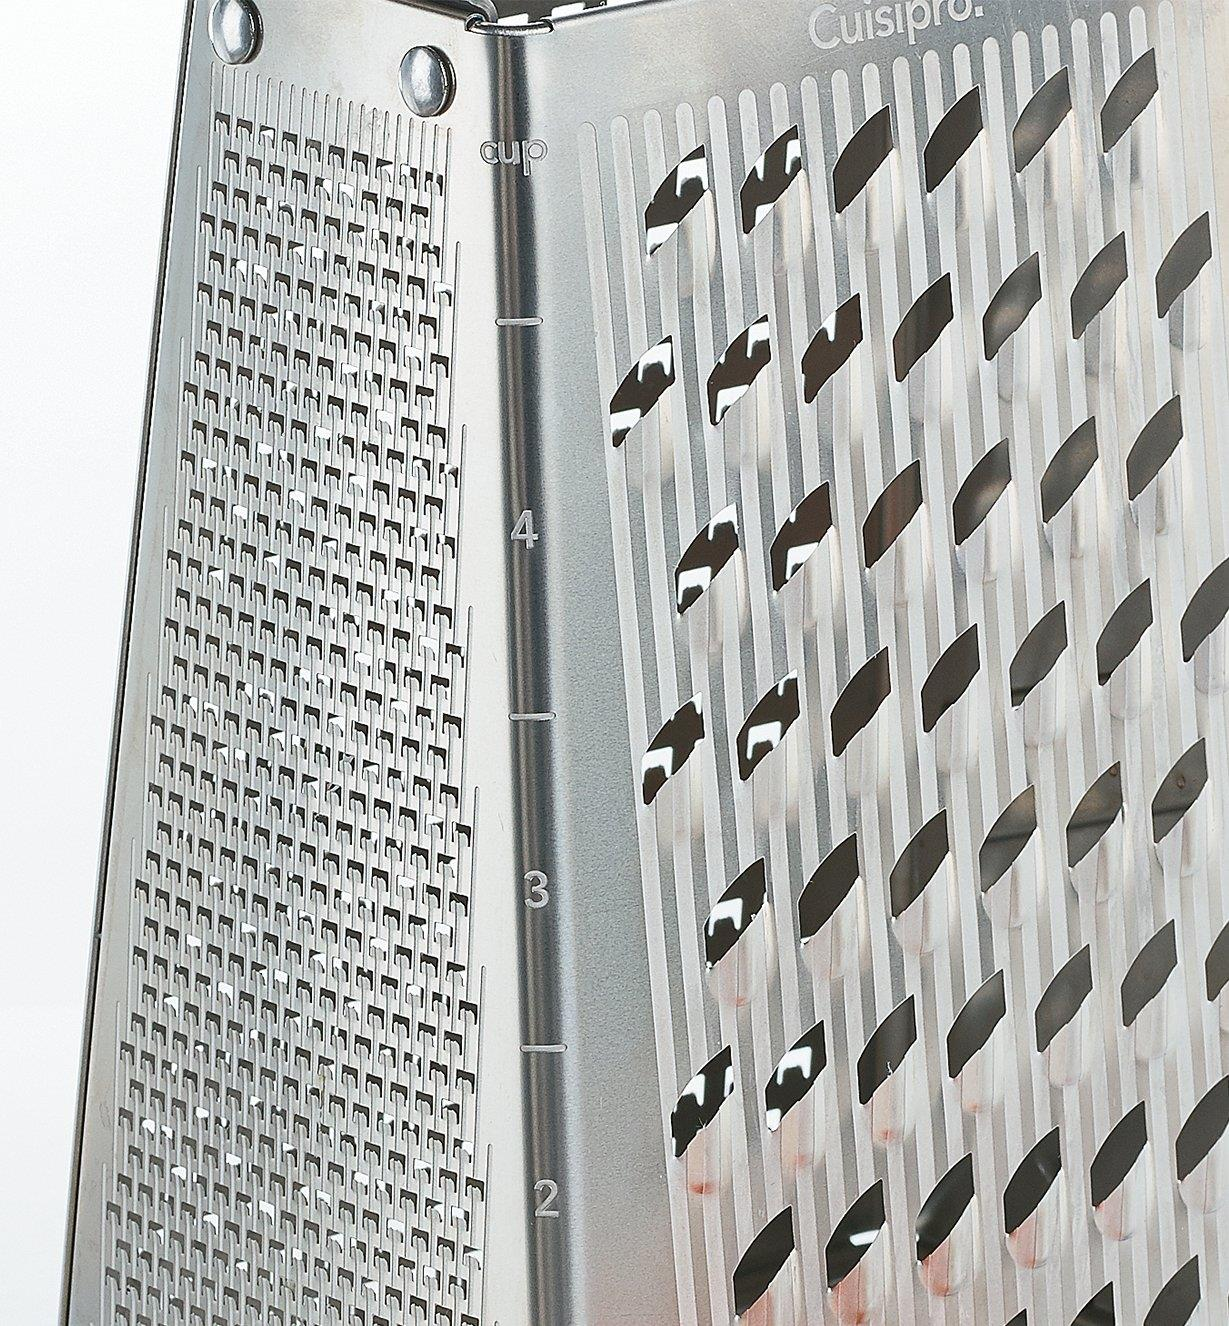 Close-up of volume marking on the corner of the grater